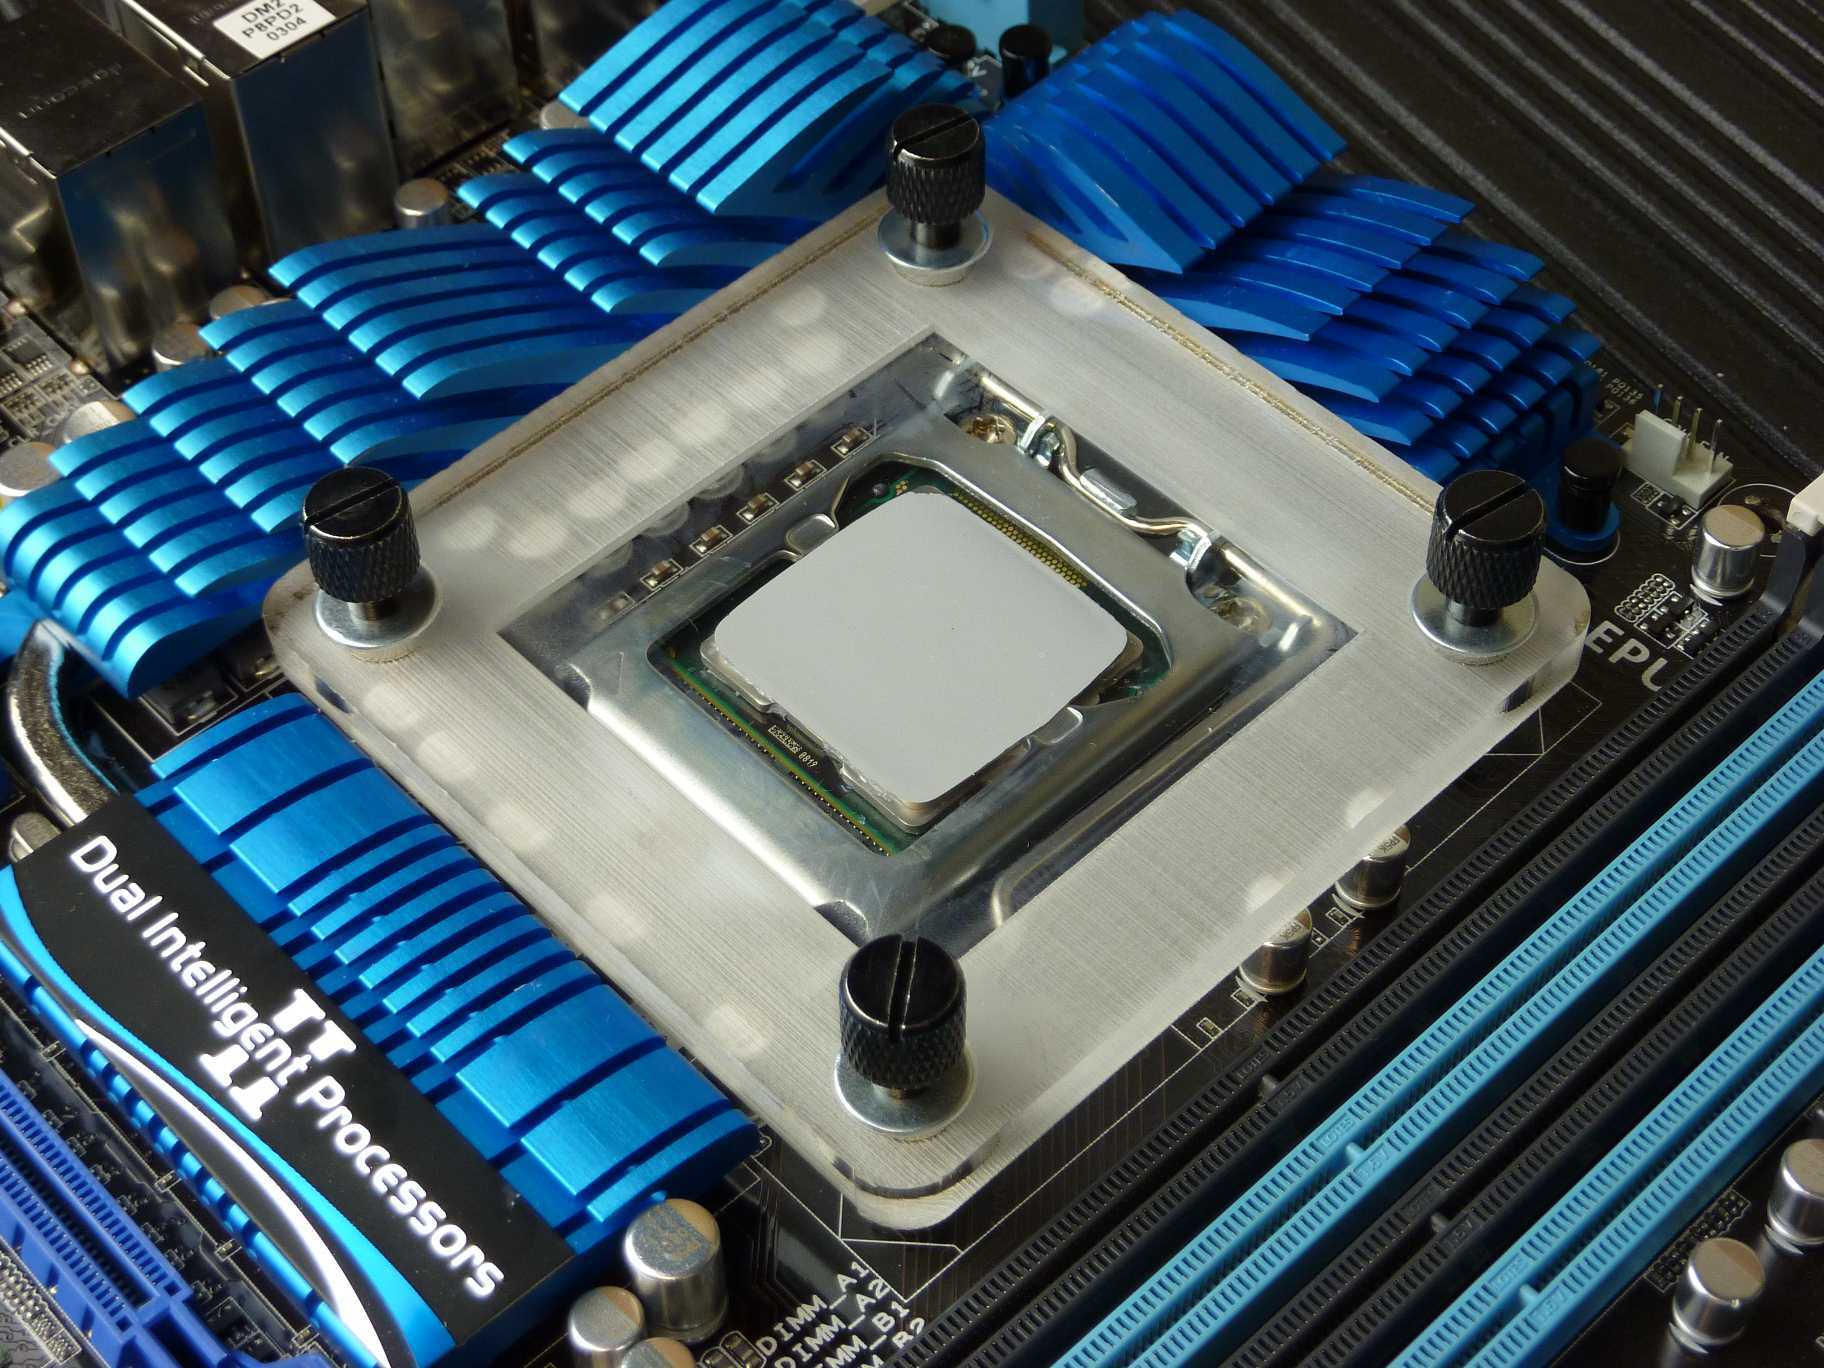 Thermal Paste Spreader Secured